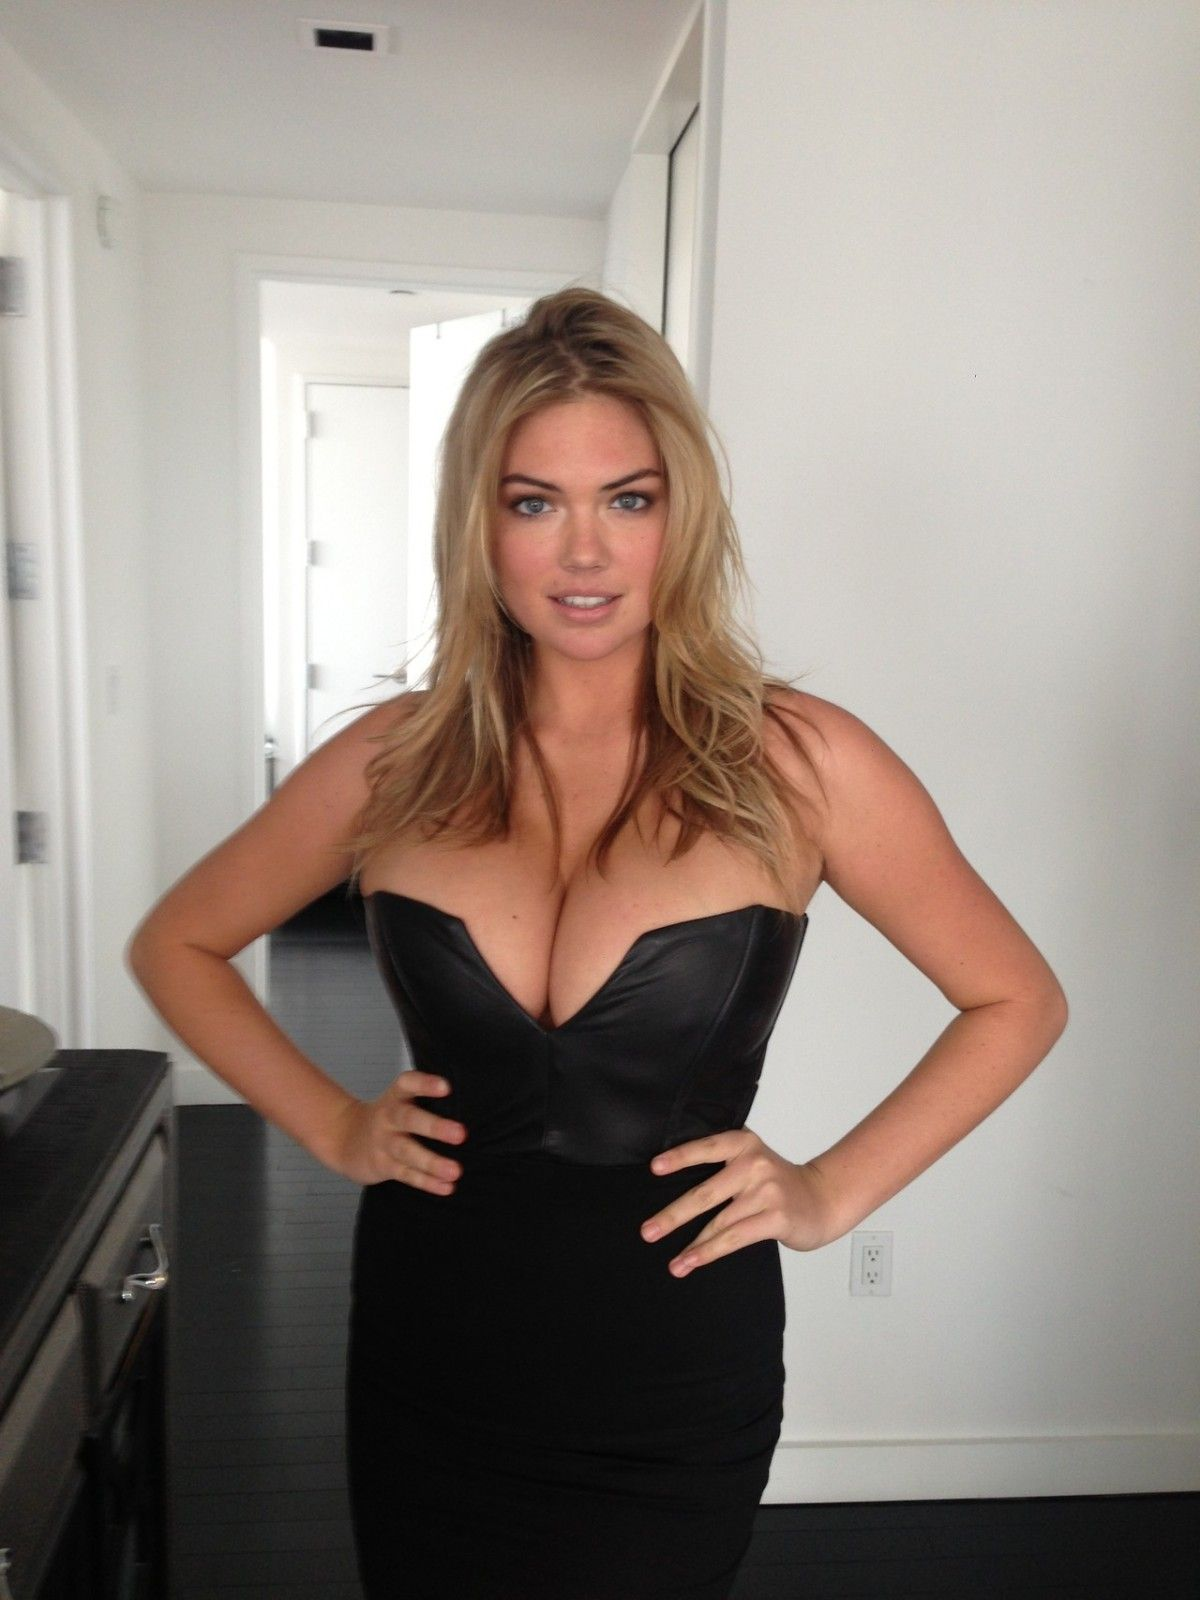 Kate Upton Leaked Pictures Nude